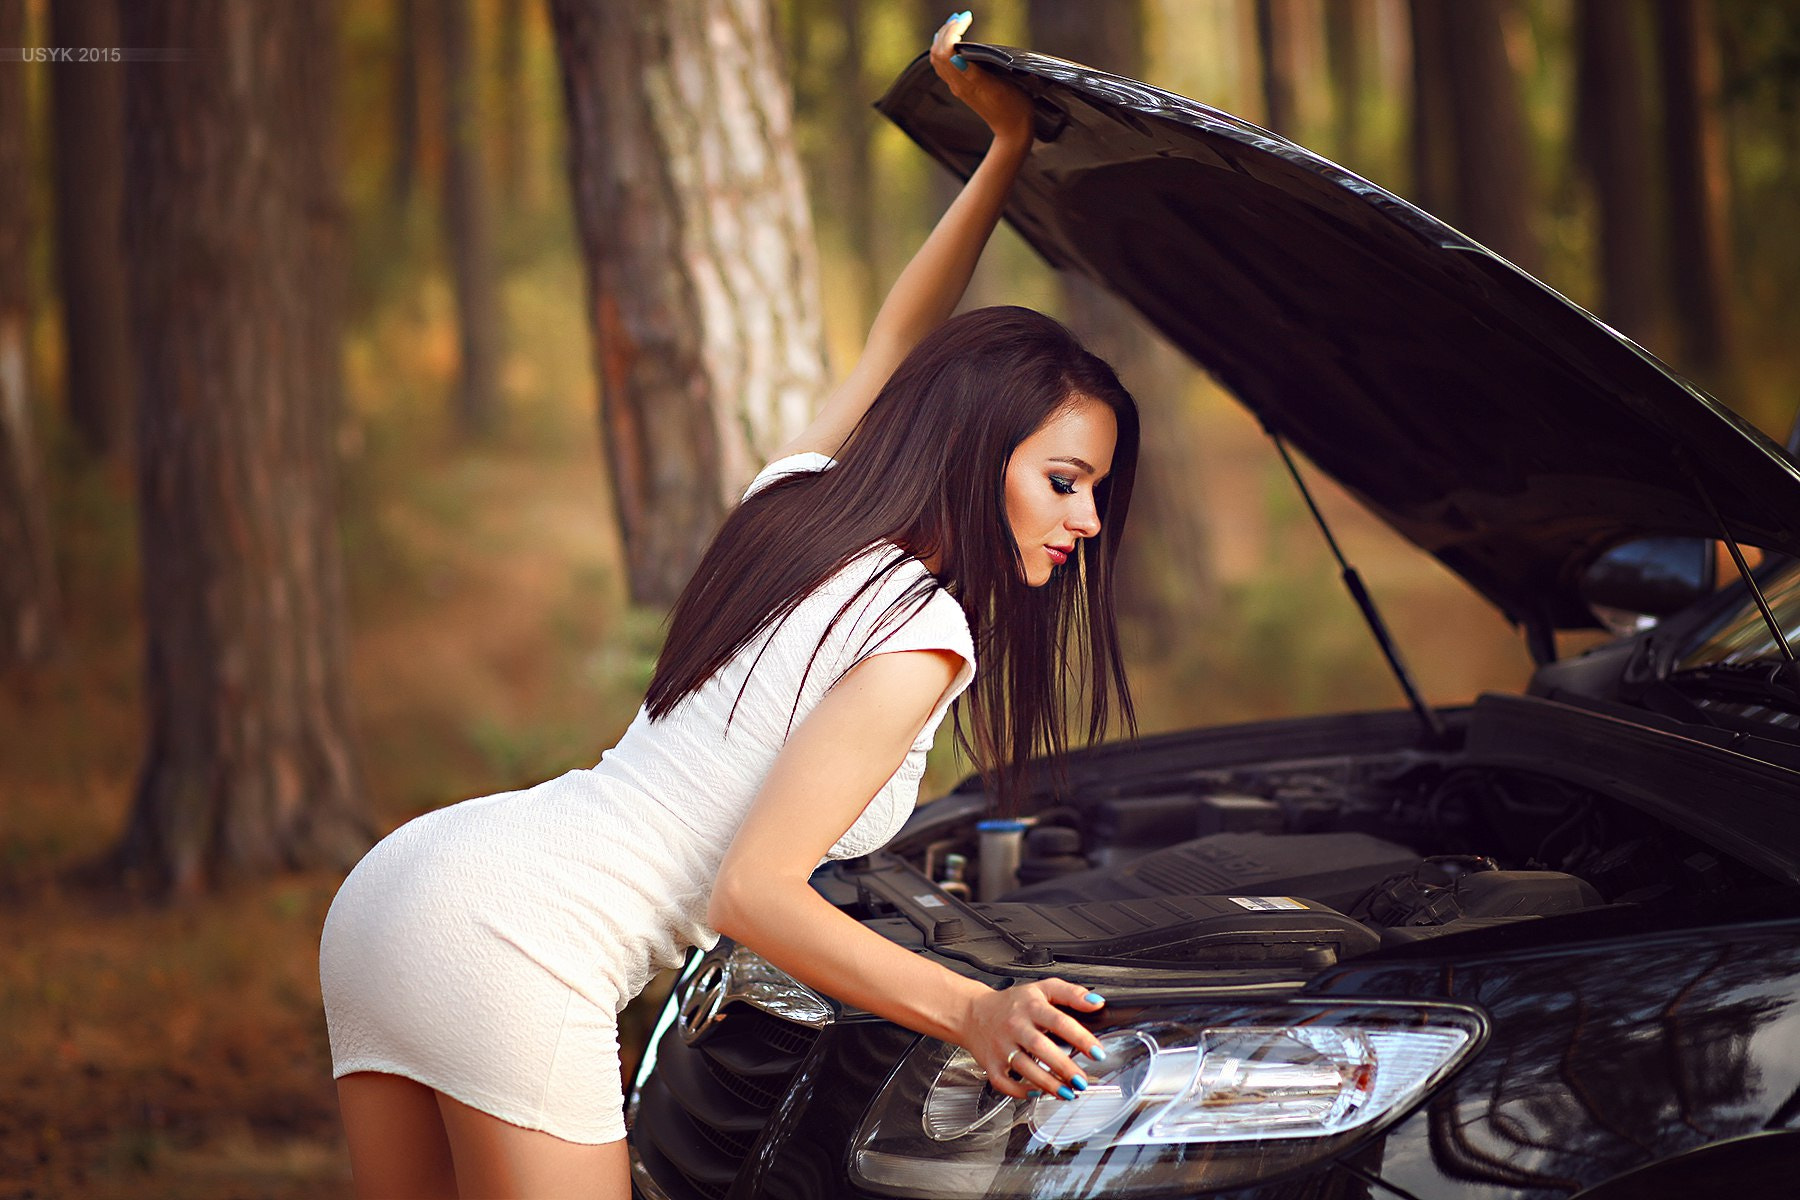 Cars Checking engine girls wallpapers